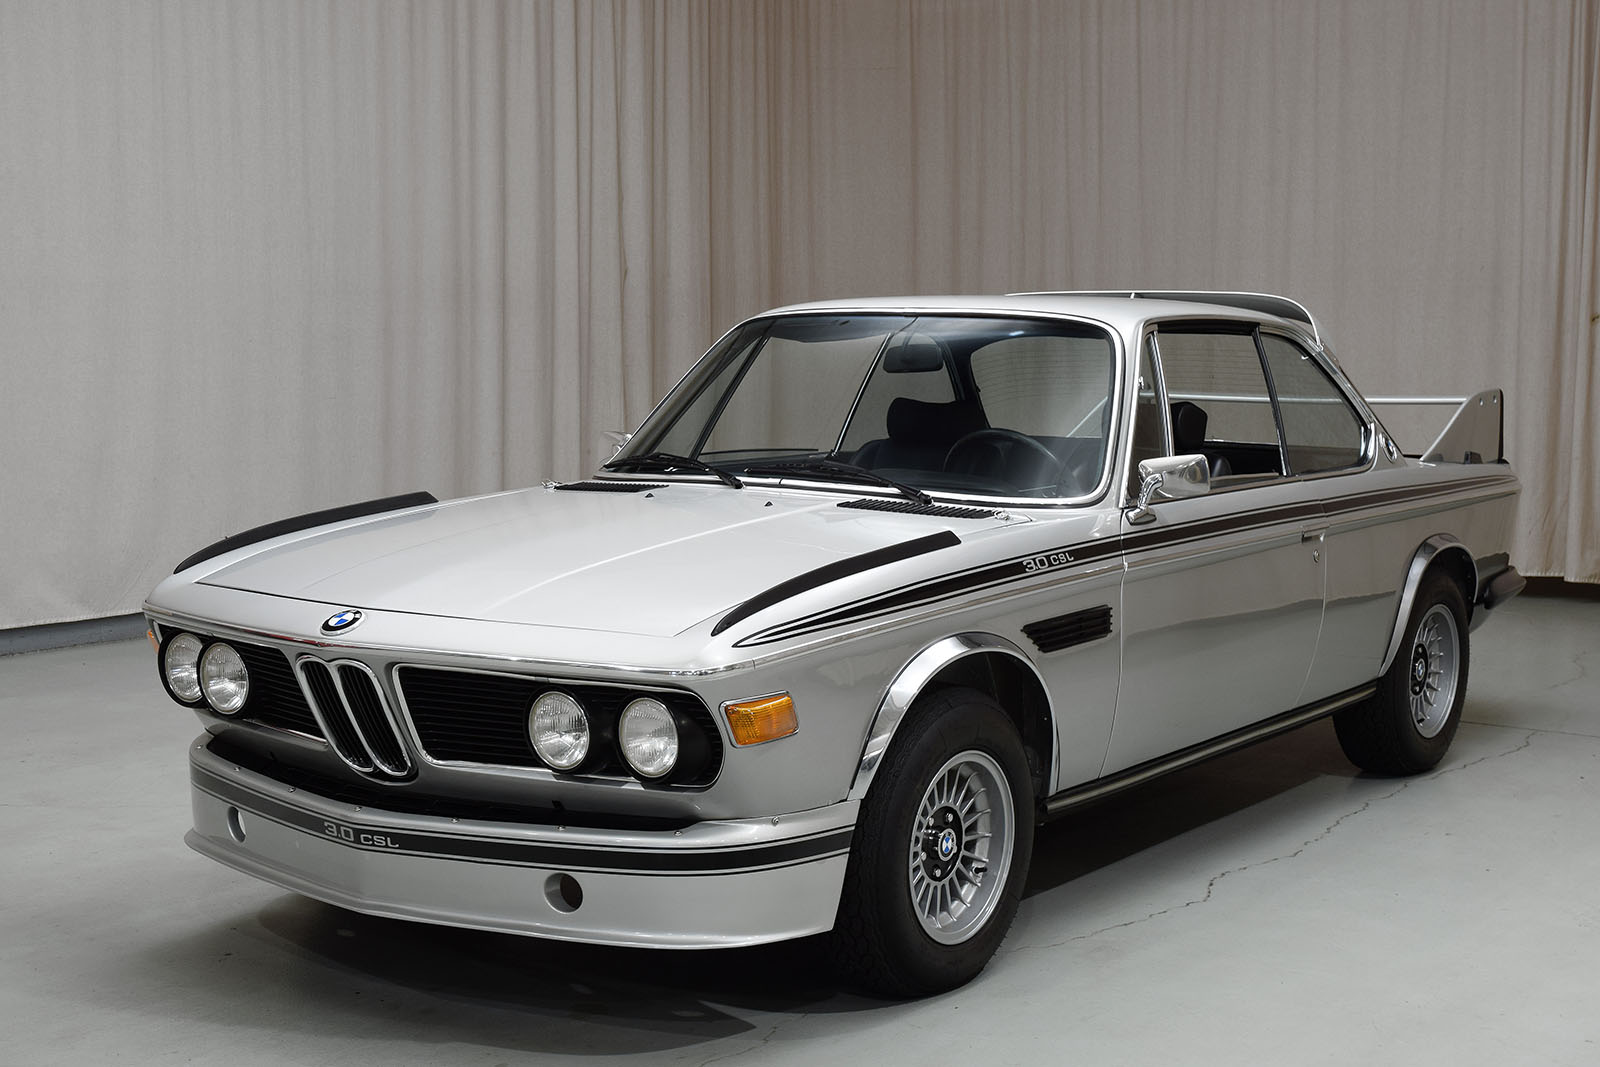 1974 bmw 3 0 csl batmobile coupe hyman ltd classic cars. Black Bedroom Furniture Sets. Home Design Ideas